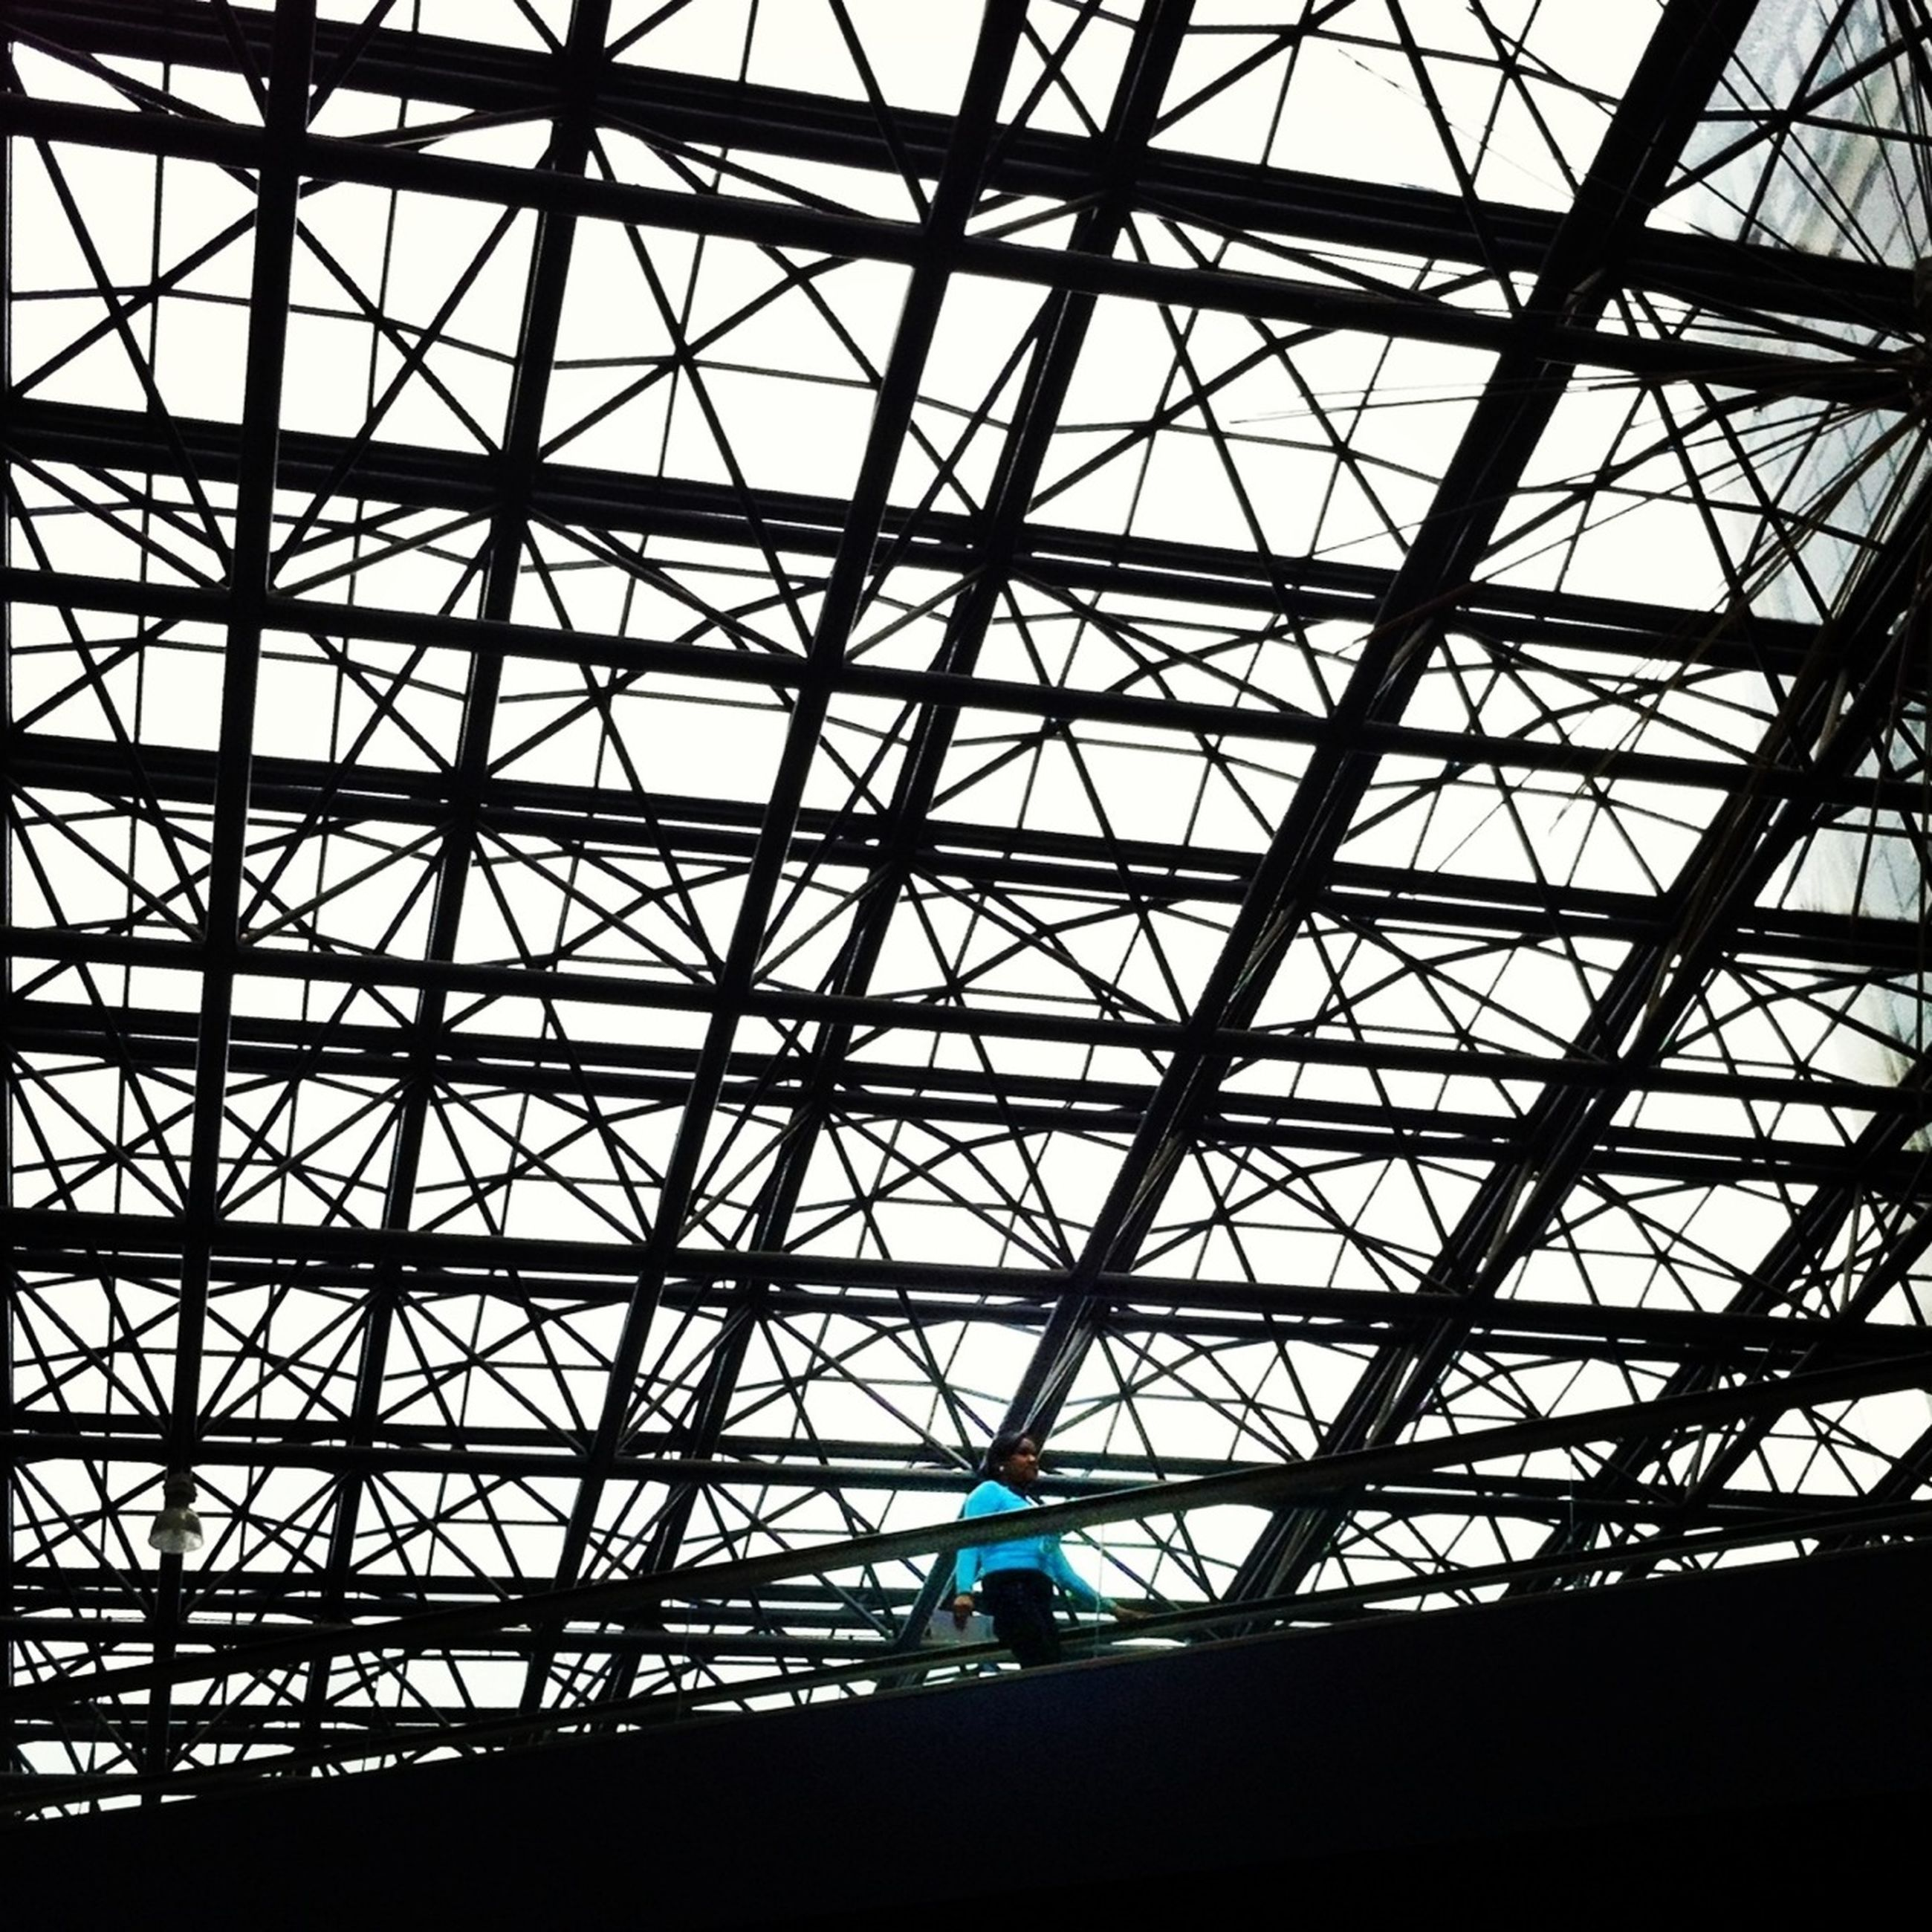 low angle view, built structure, silhouette, architecture, metal, sky, ceiling, connection, grid, pattern, indoors, metallic, no people, directly below, backgrounds, transportation, geometric shape, full frame, day, architectural feature